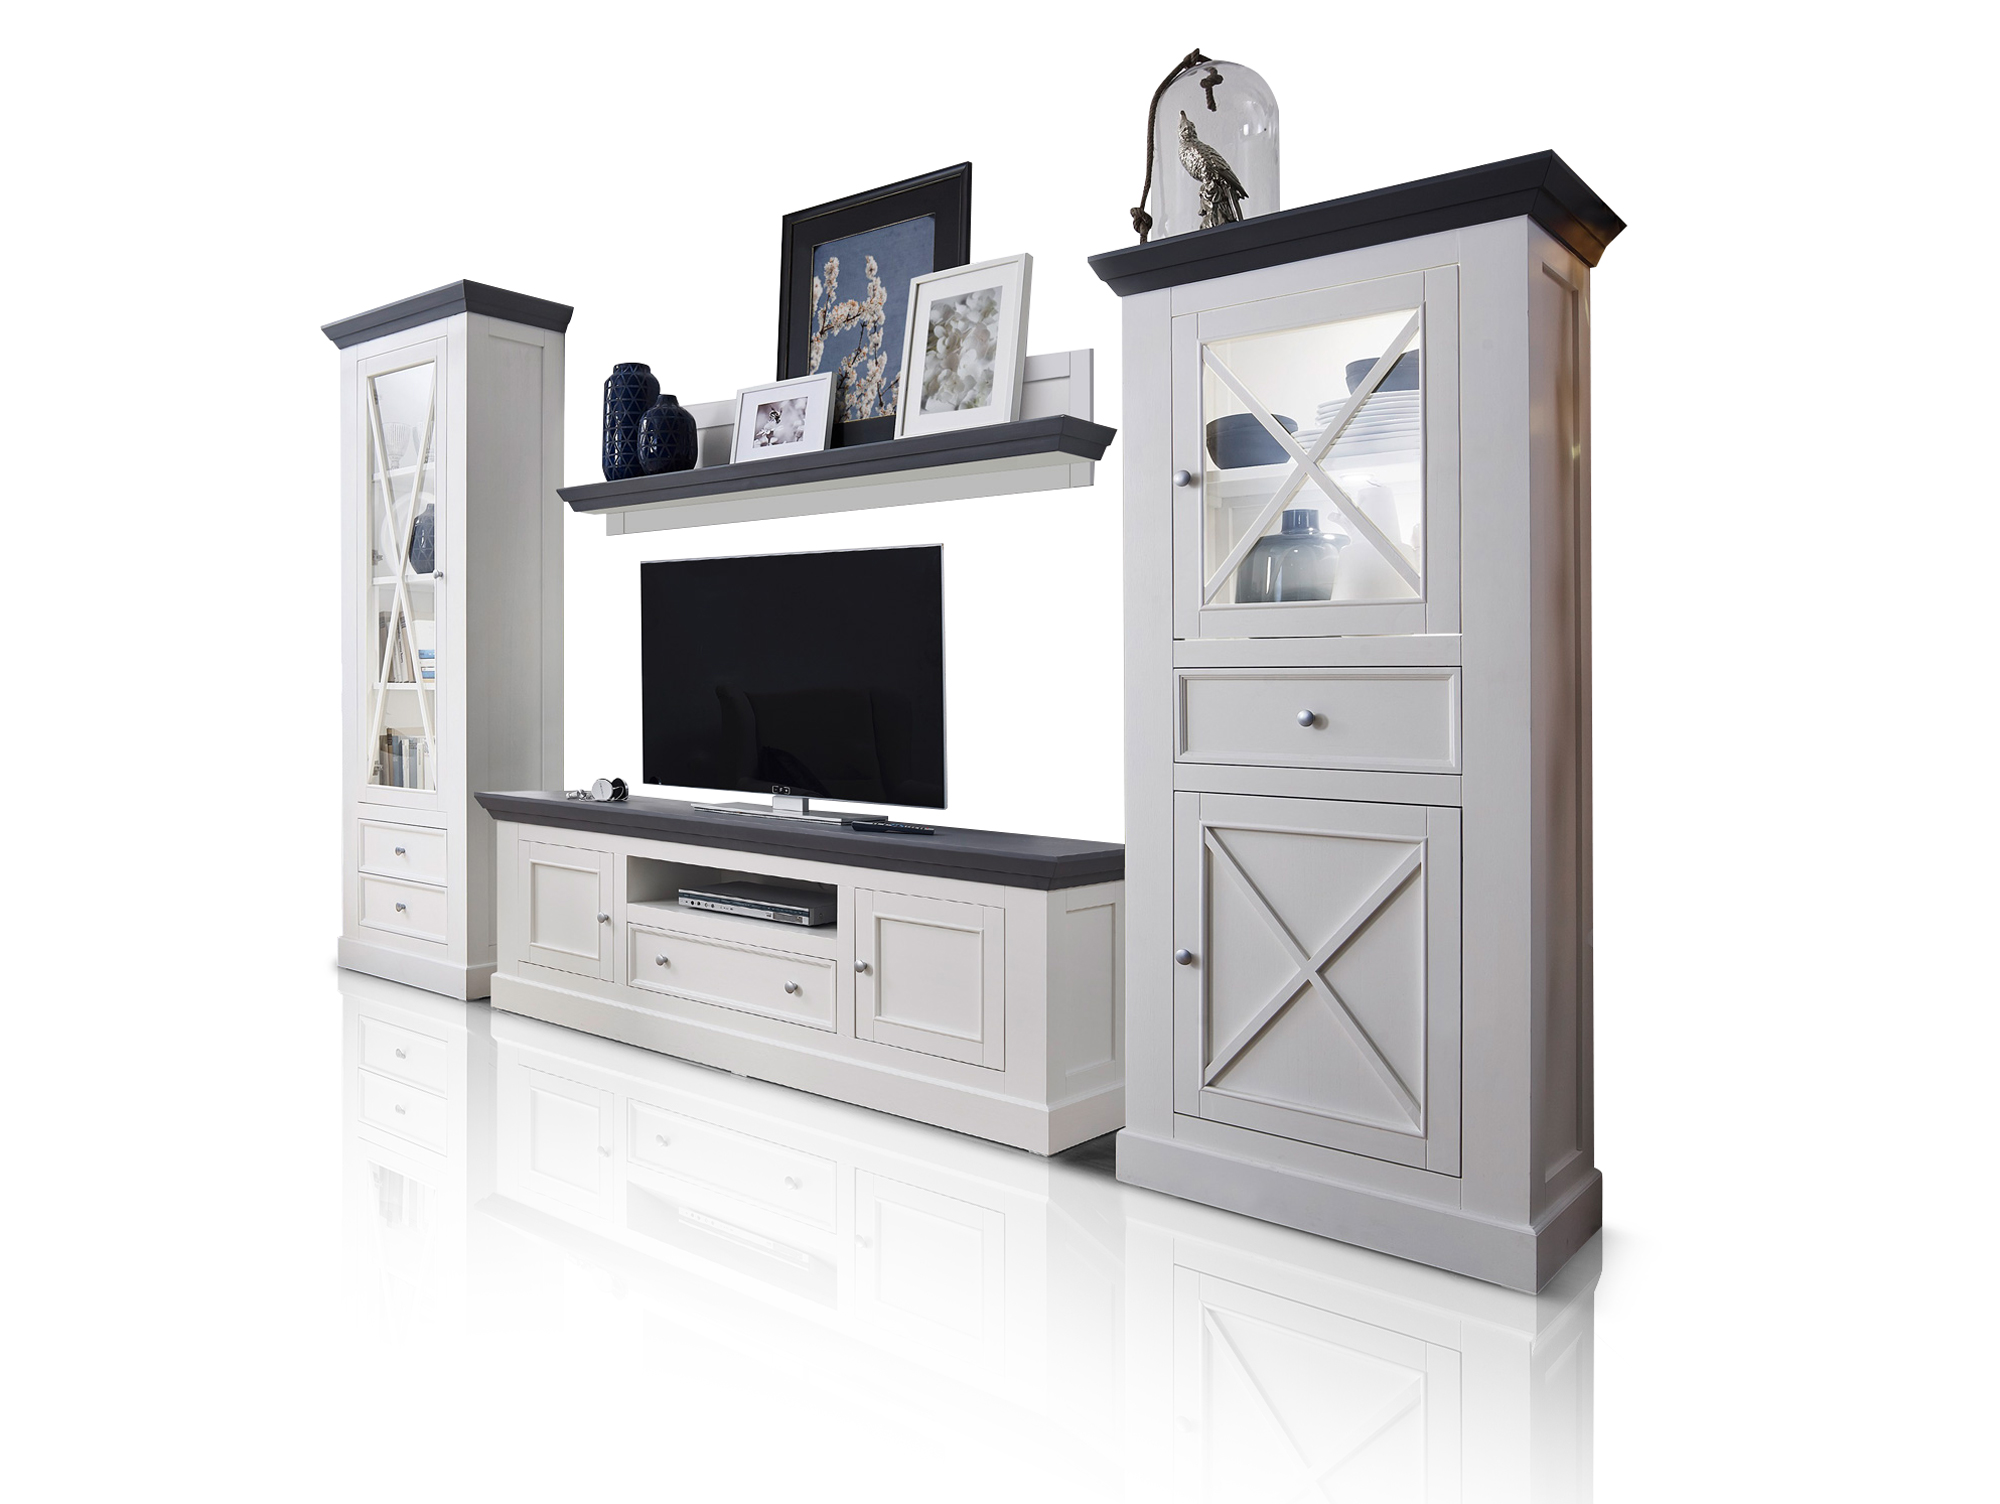 graz wohnwand weiss lackiert. Black Bedroom Furniture Sets. Home Design Ideas